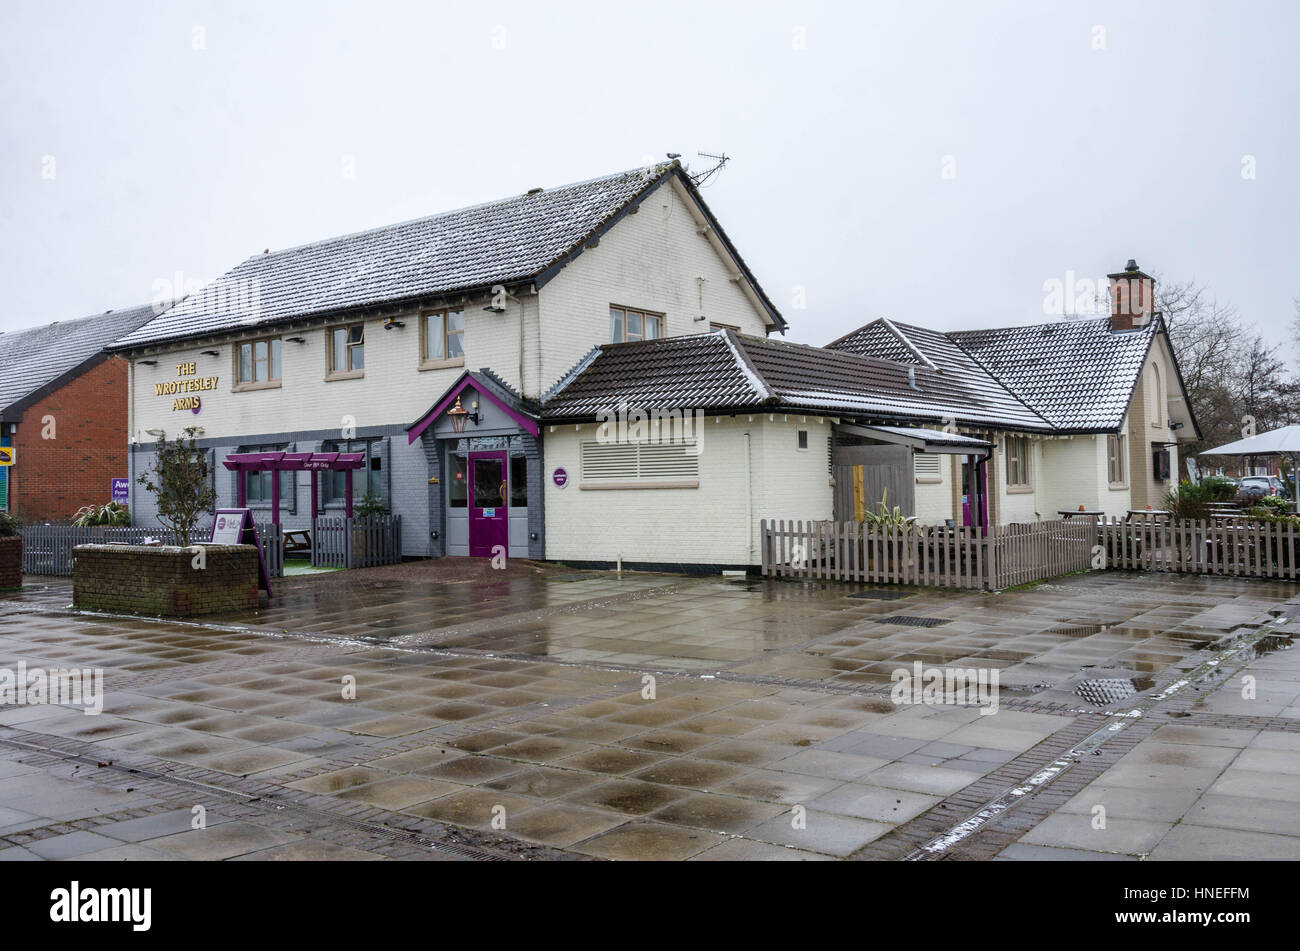 The Wrottesley Arms Pub in Perton, South Staffordshire, seen here with a light covering of snow on it's roof. - Stock Image